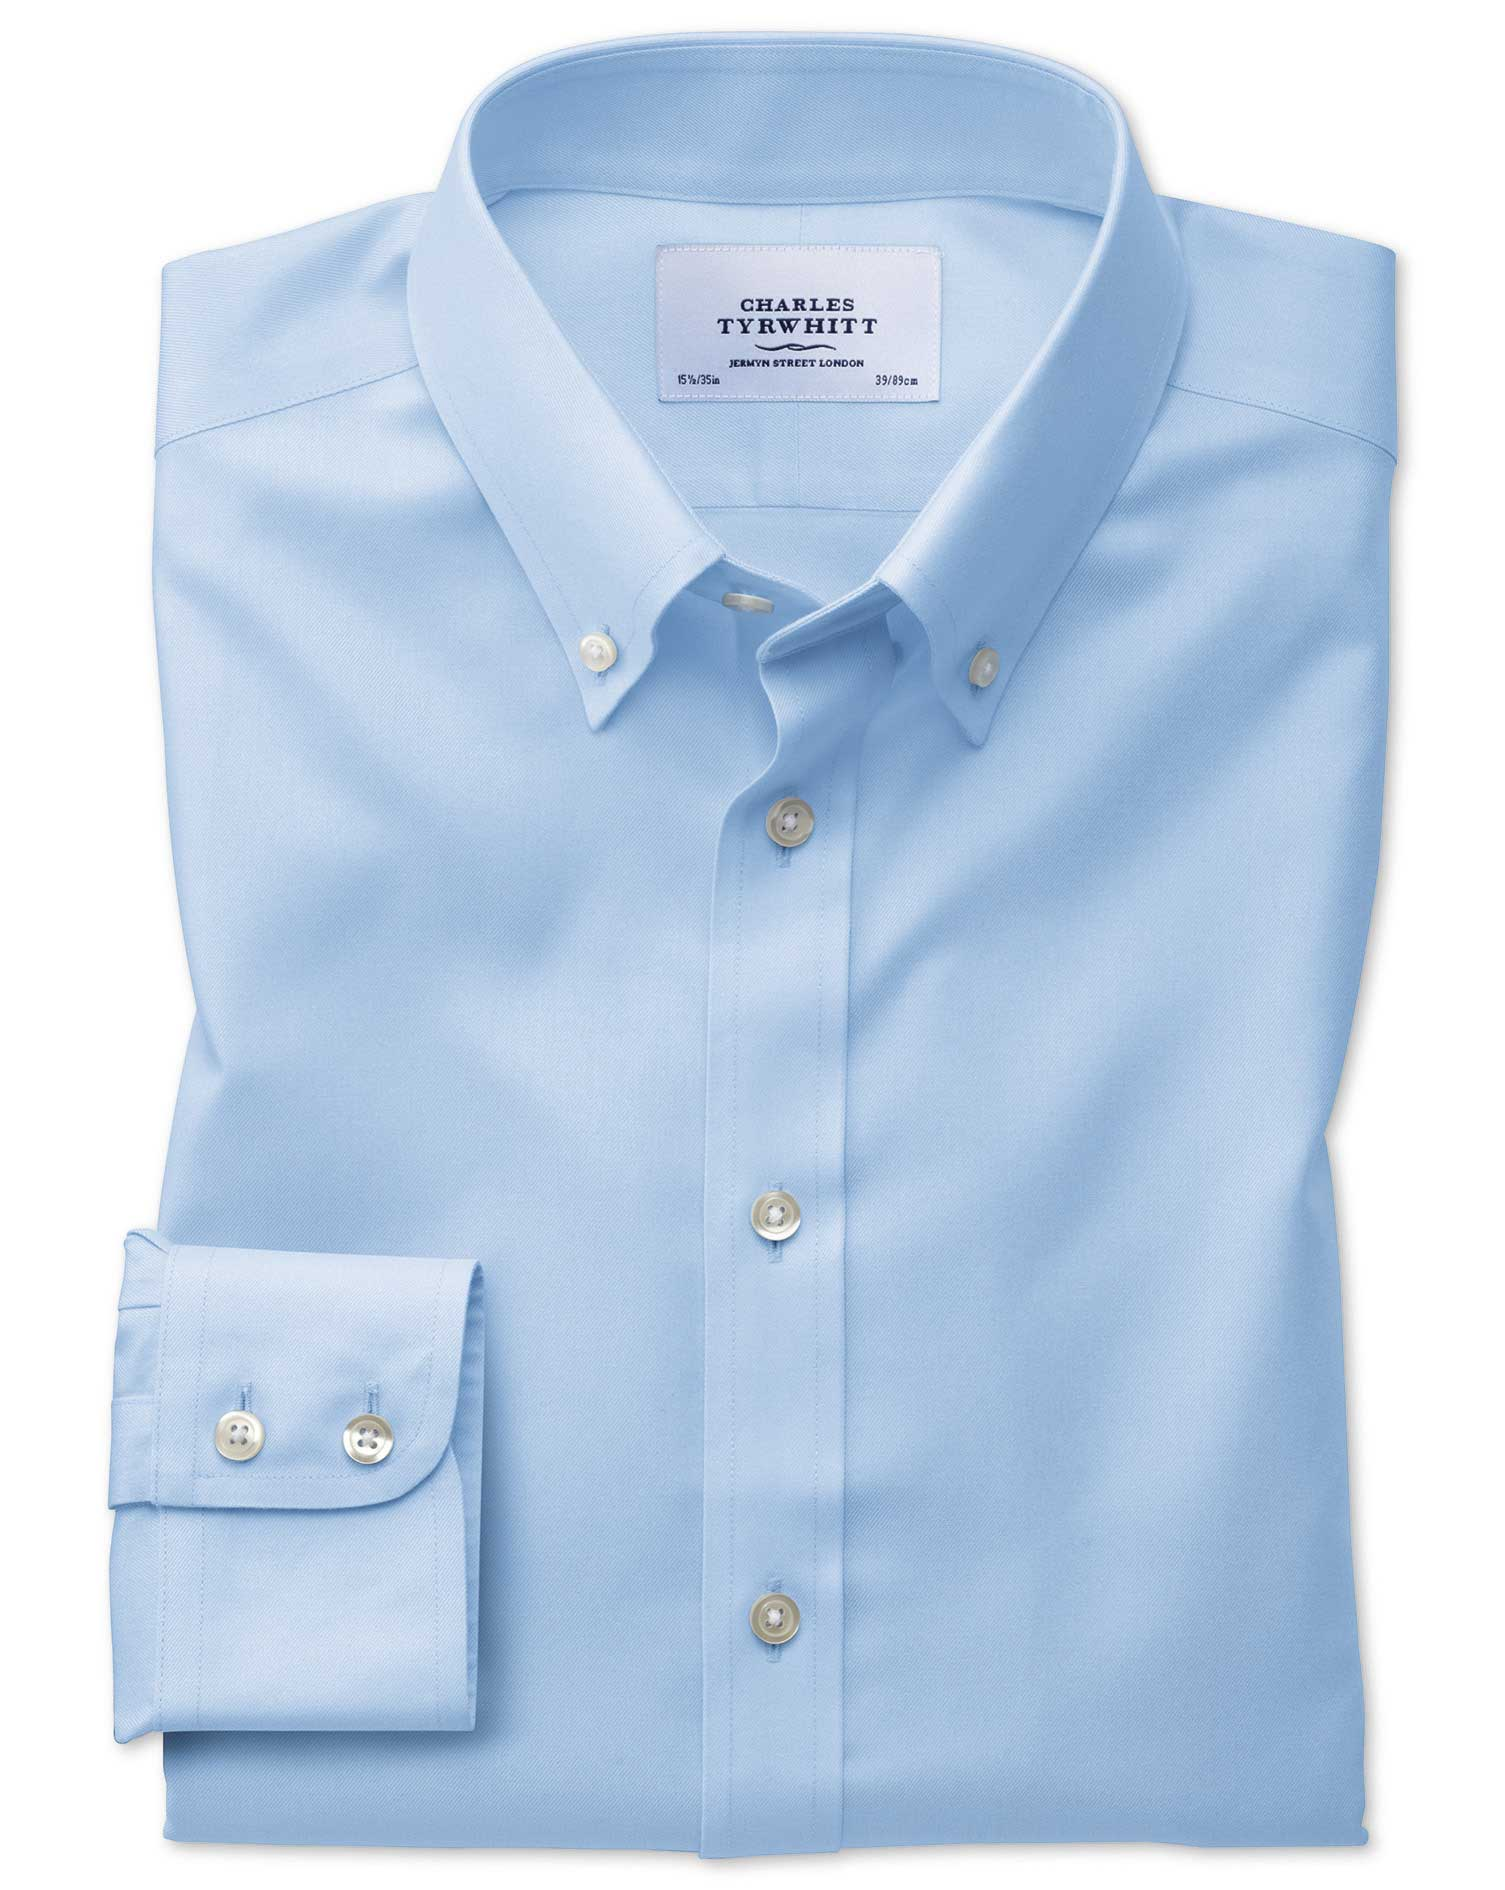 Extra Slim Fit Button-Down Non-Iron Twill Sky Blue Cotton Formal Shirt Single Cuff Size 17.5/34 by C